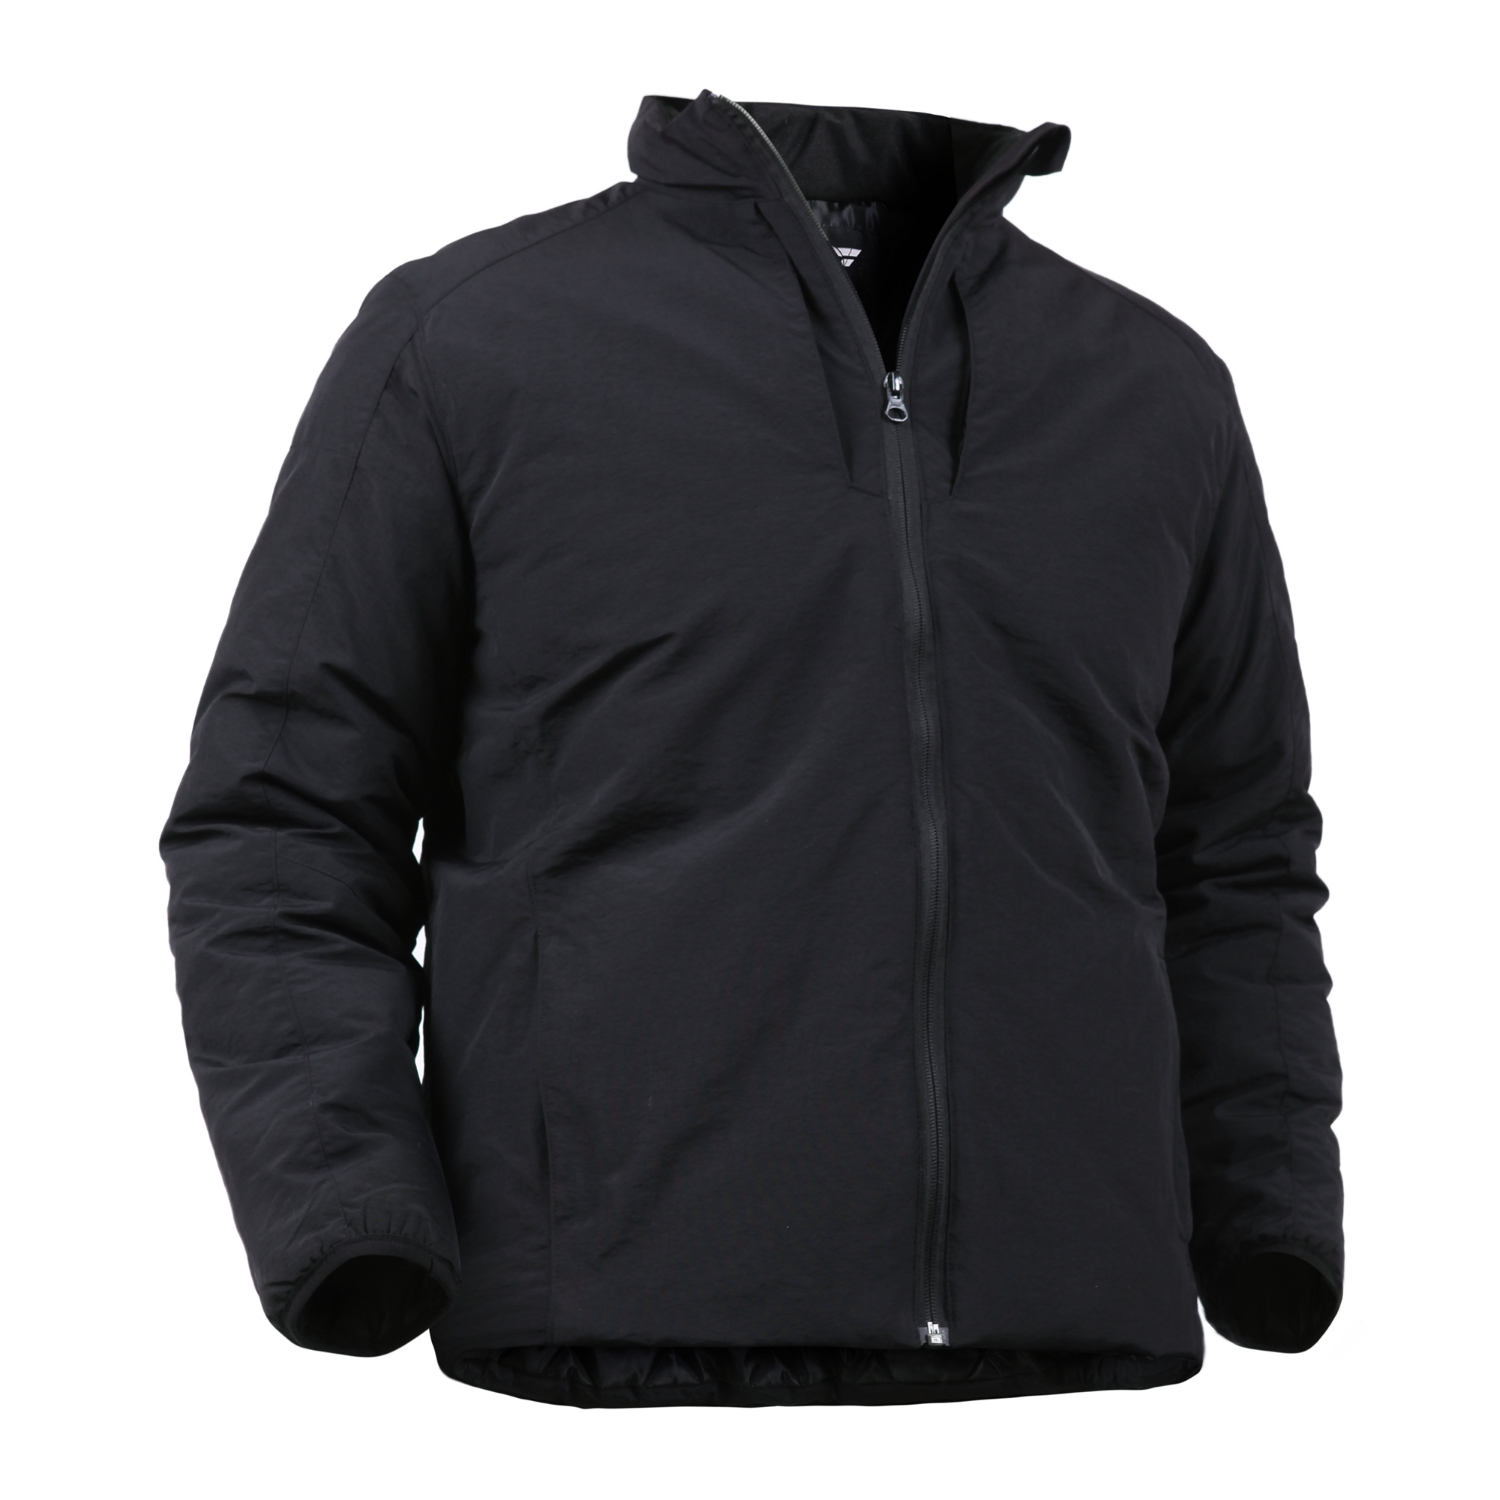 Spring Autumn Cold-proof Cotton-padded Jacket Outdoors Hiking Camping Travel Coat Tactic Windbreak Exceed Light Keep Warm Cloths